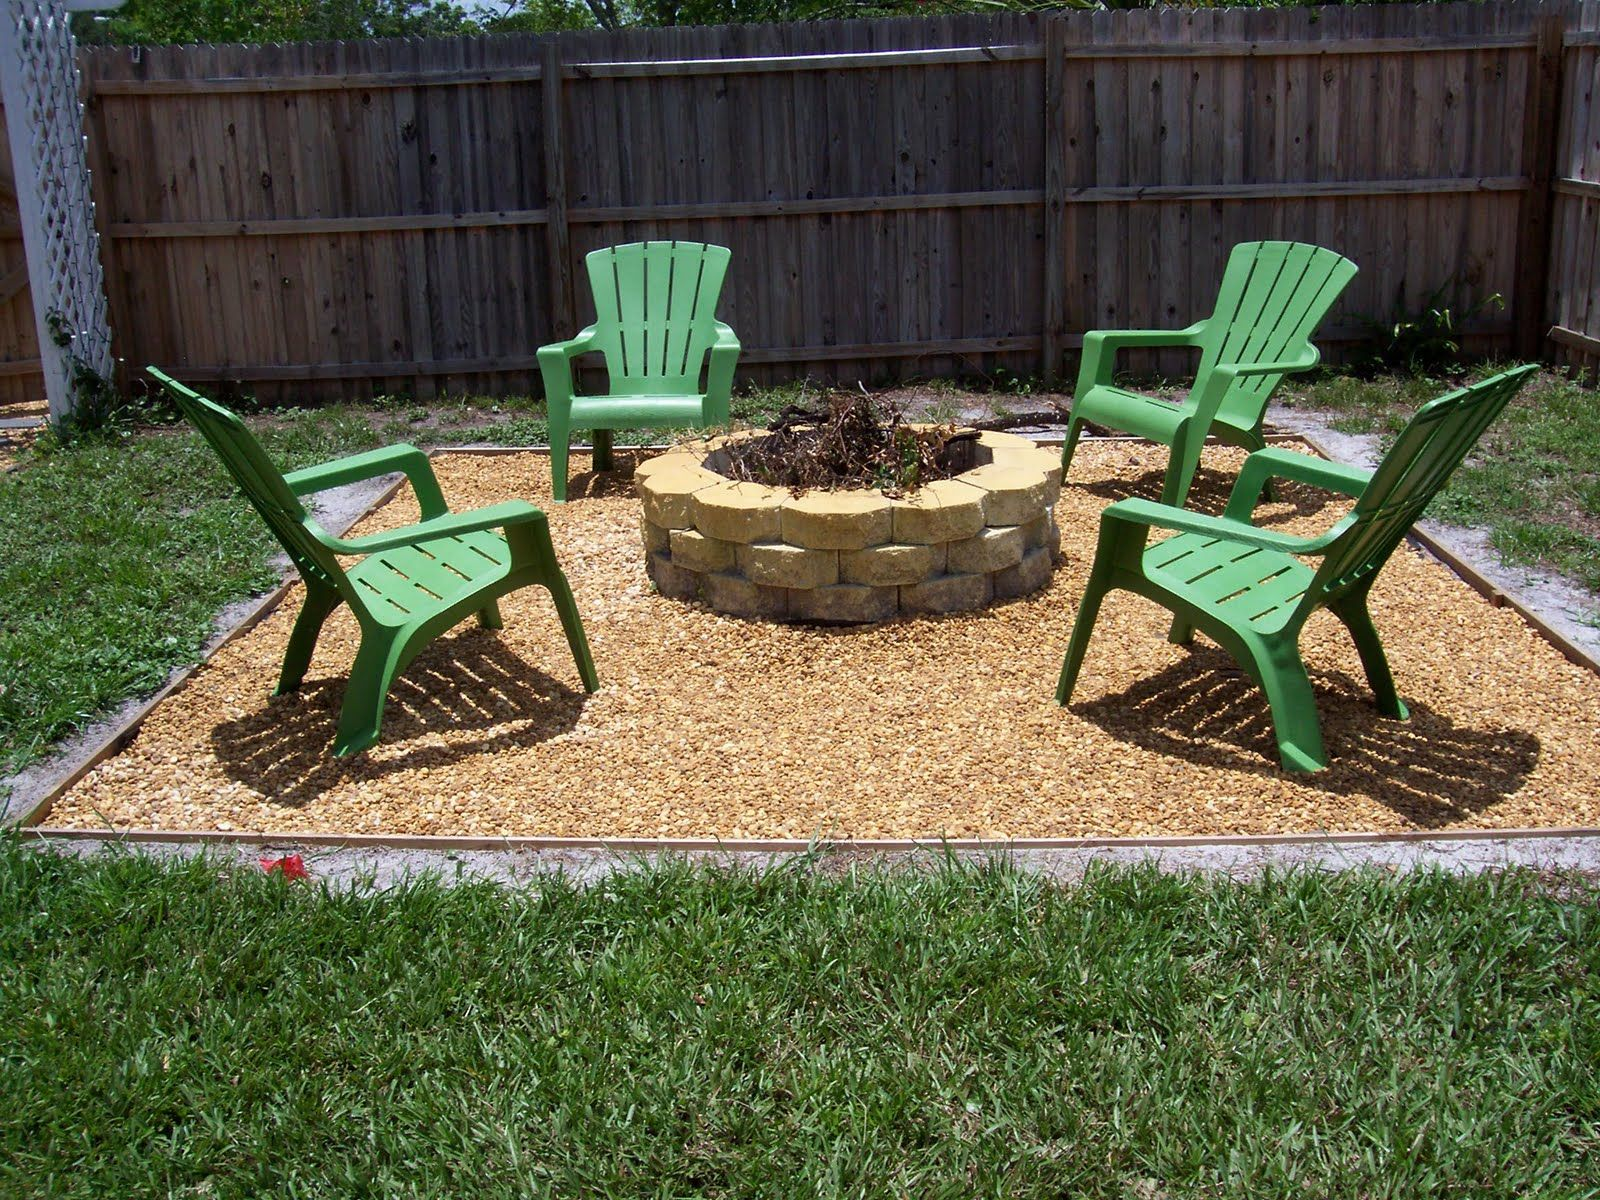 Fire Pit Backyard Ideas fire pit patio design ideas 16 Garden Design With Fire Pits Denver Cheap And Outdoor Fire Bowls Simple Home Backyard With Backyards